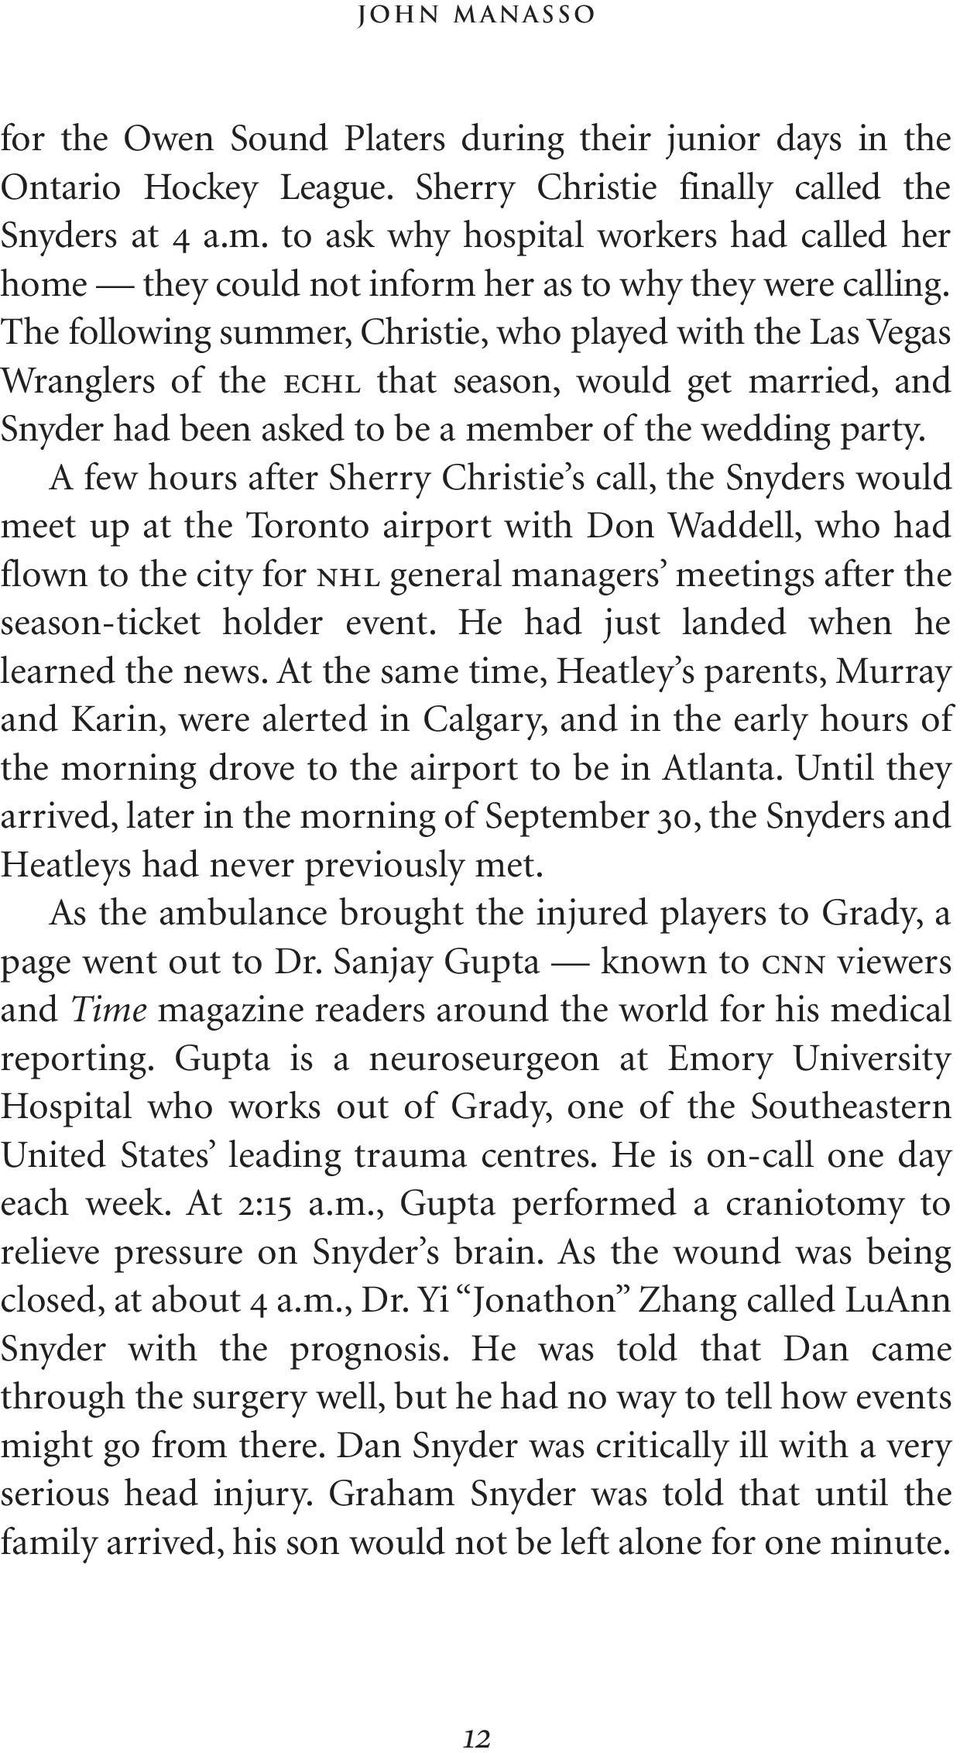 A few hours after Sherry Christie s call, the Snyders would meet up at the Toronto airport with Don Waddell, who had flown to the city for nhl general managers meetings after the season-ticket holder